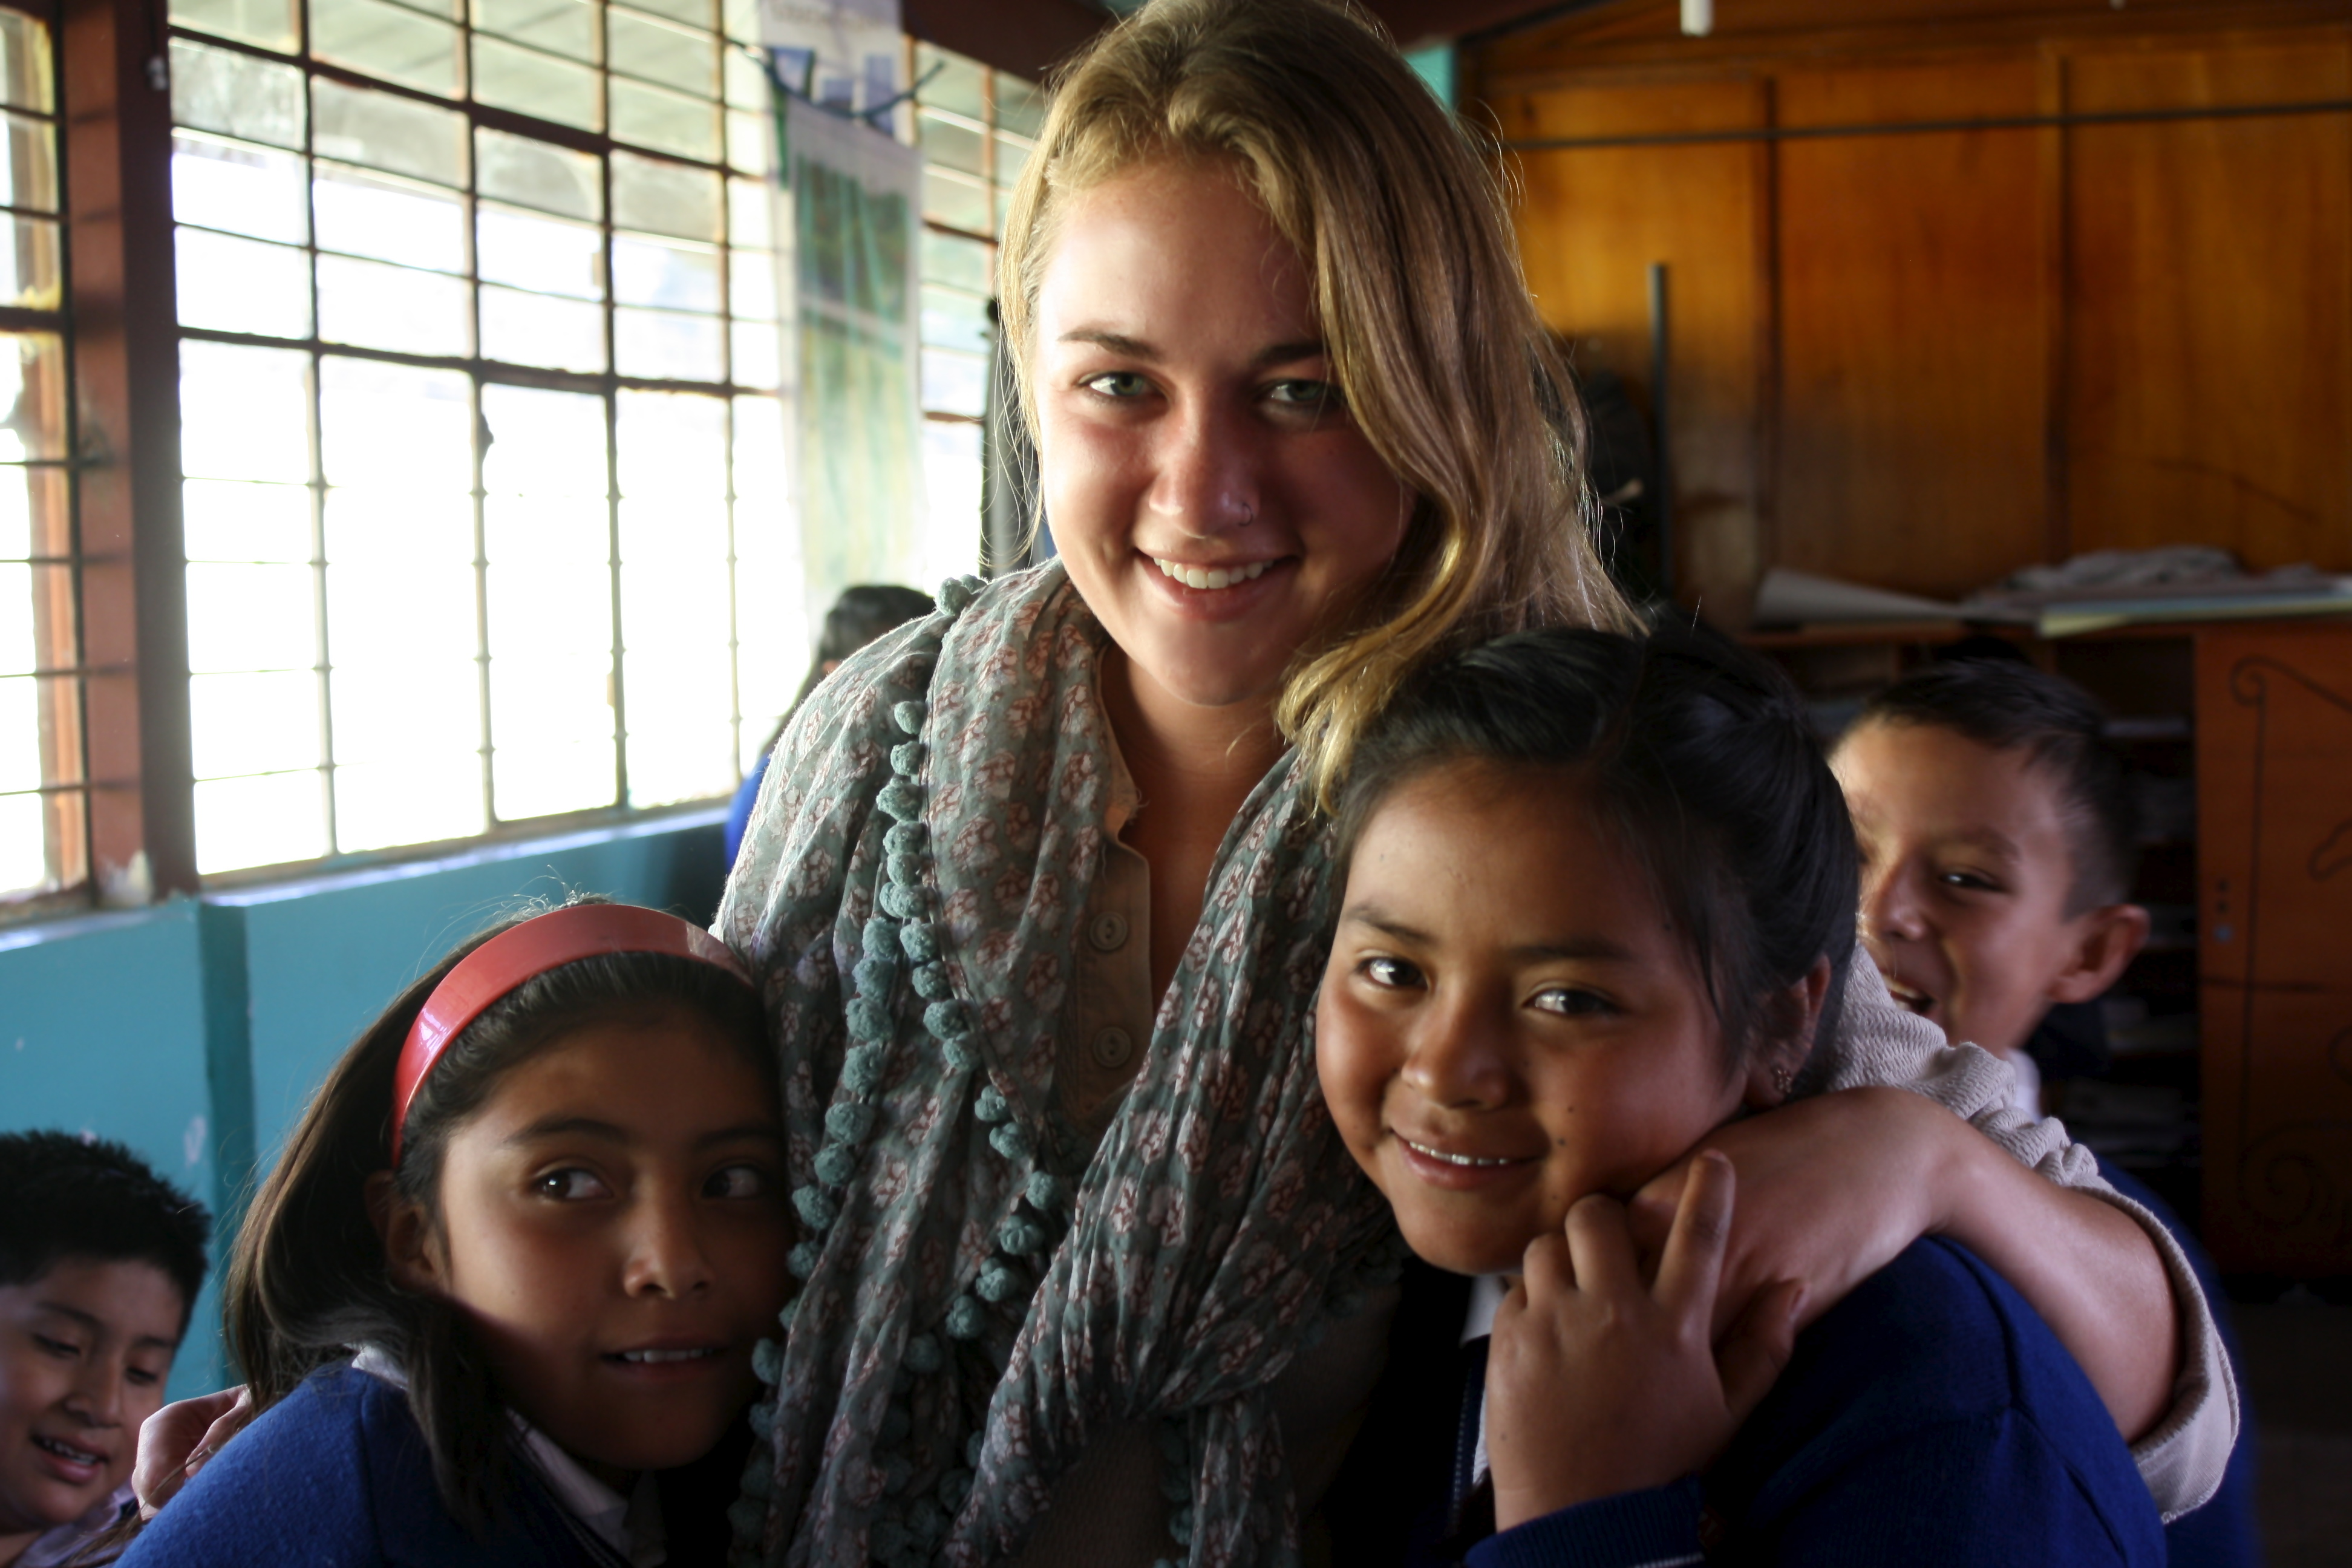 Nutrition student teaches healthy eating habits to community in Ecuador